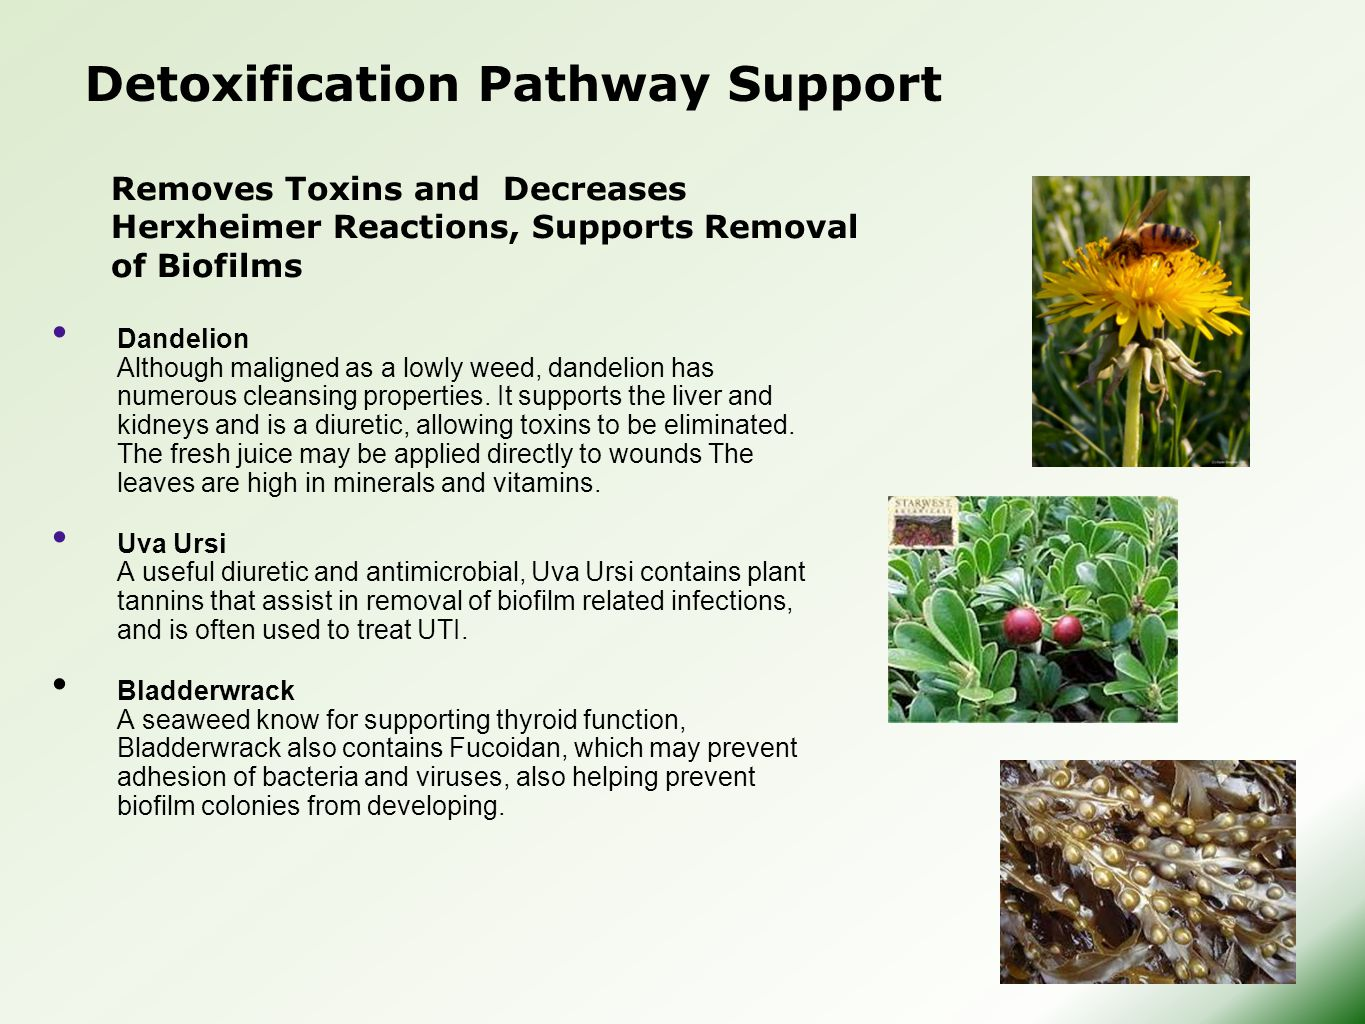 Detoxification Pathway Support Dandelion Although maligned as a lowly weed, dandelion has numerous cleansing properties.